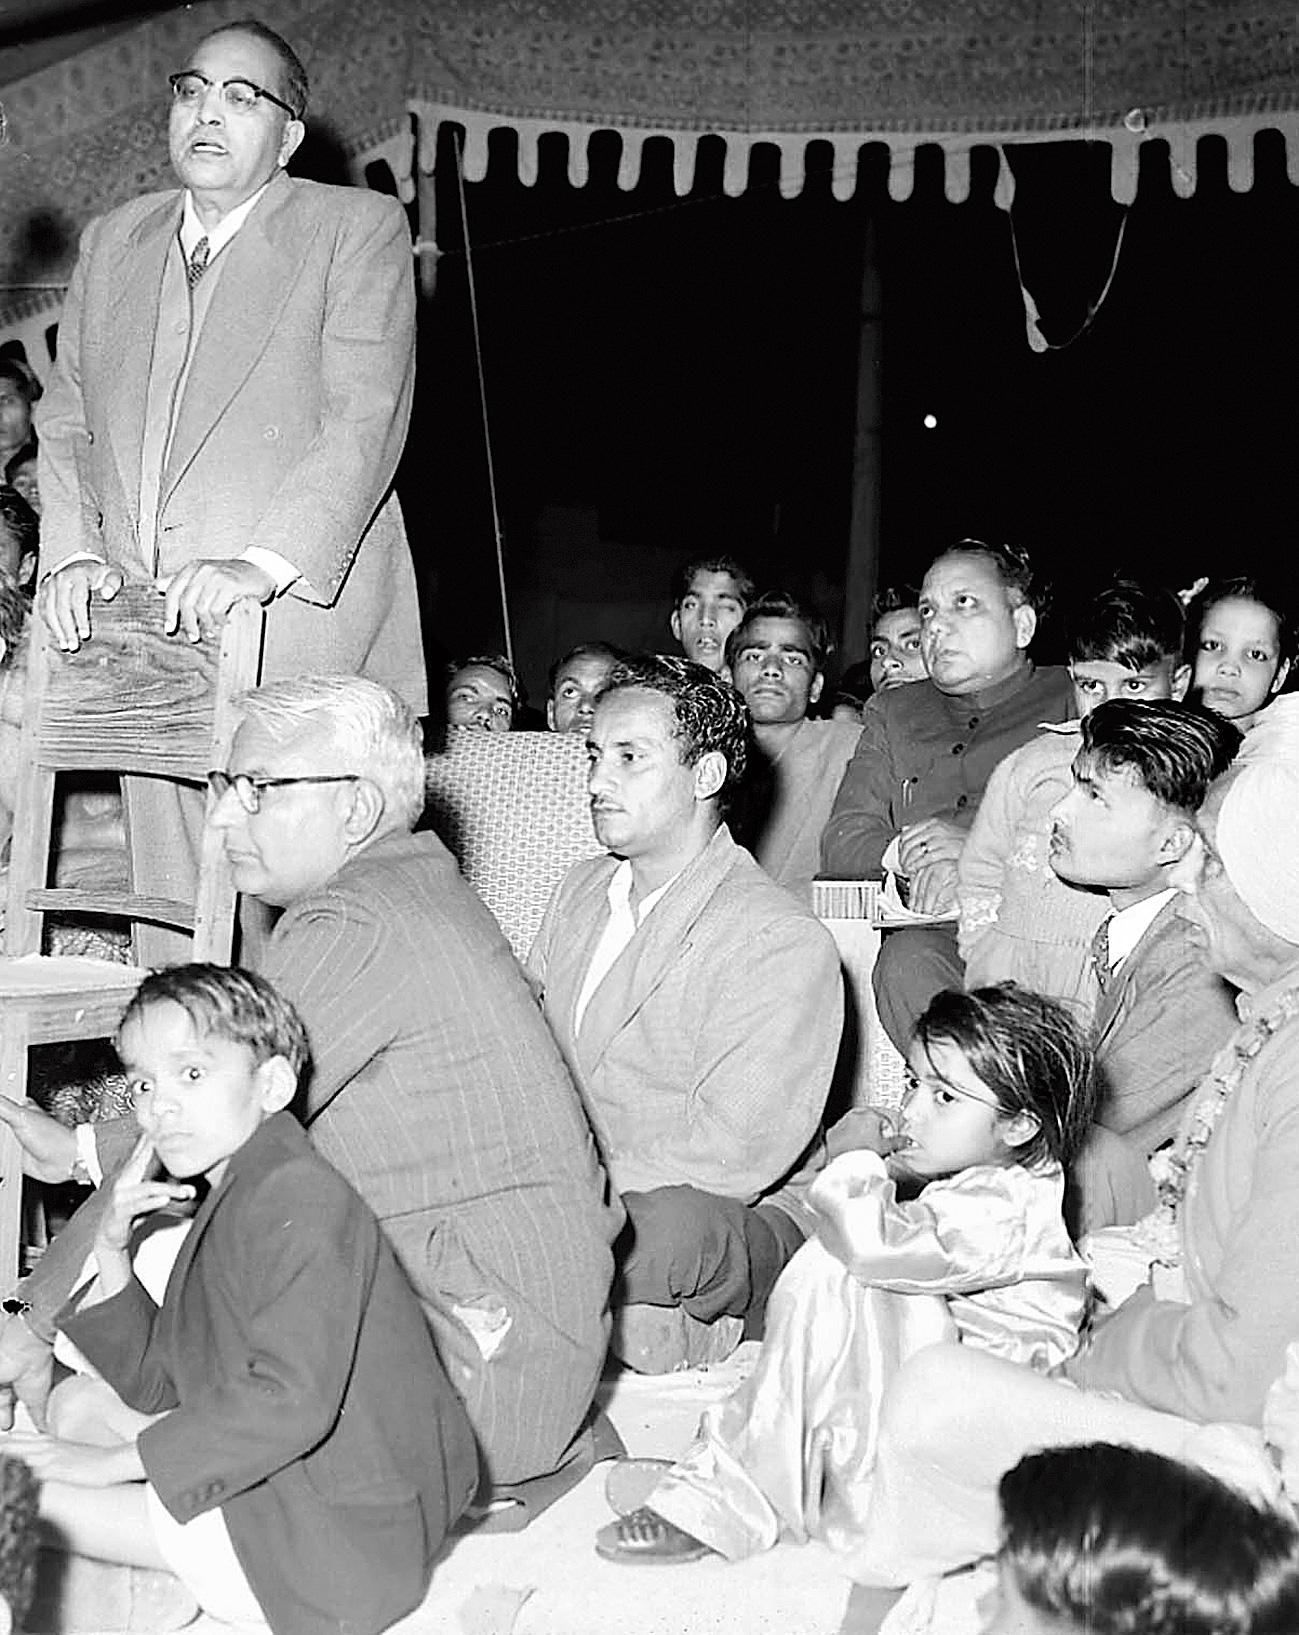 B R Ambedkar called for the annihilation of caste for India to be a society of equals